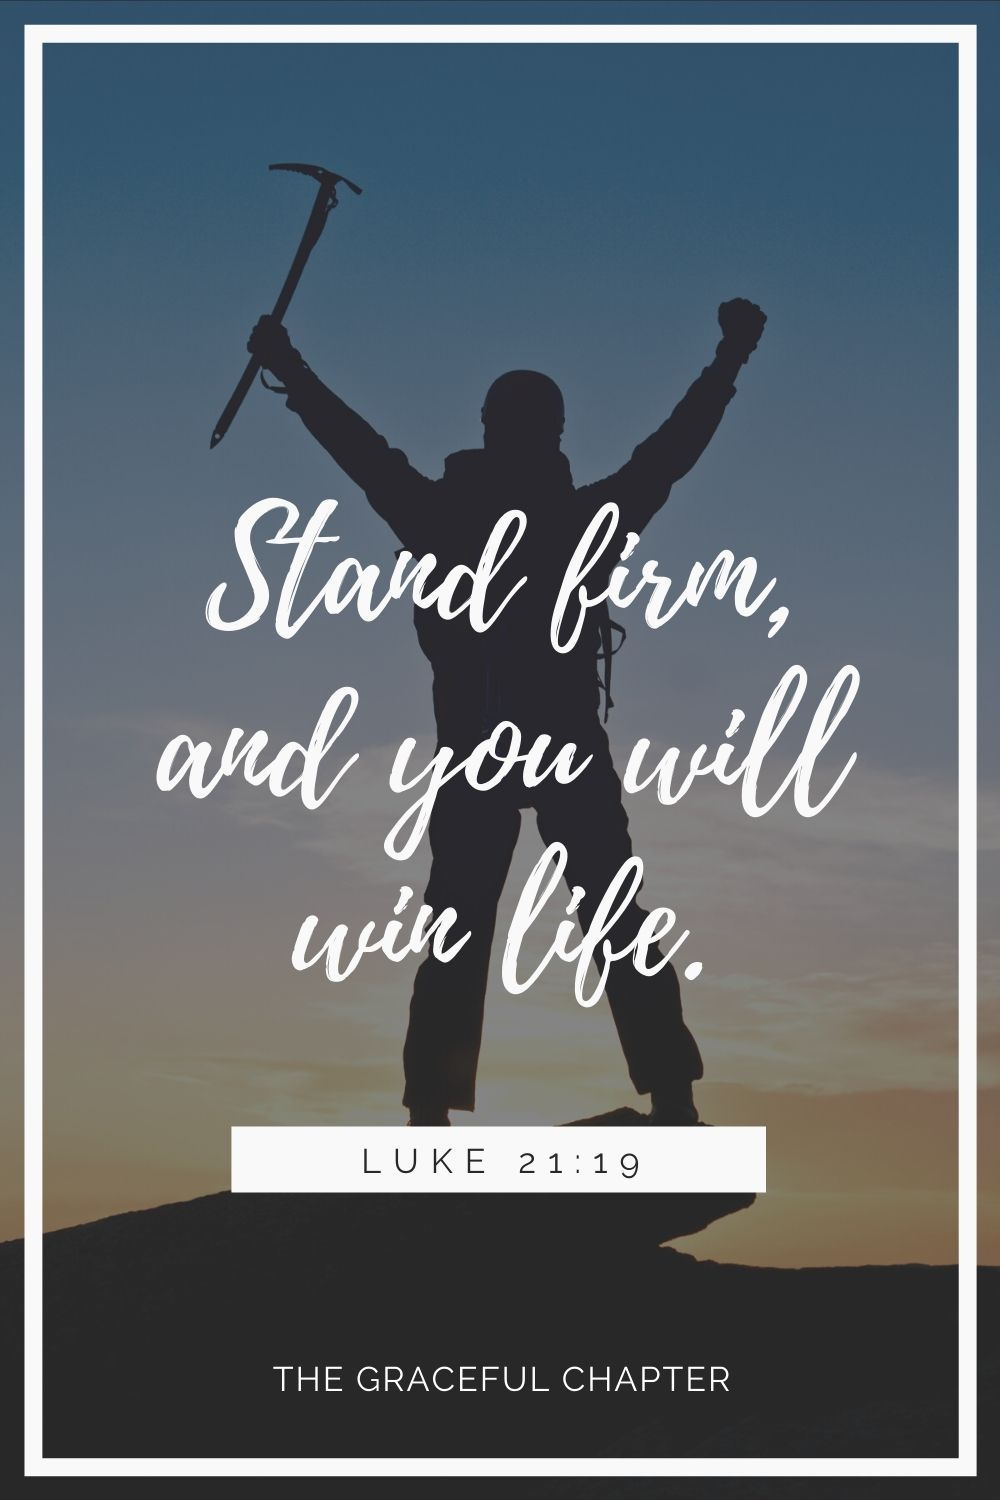 Stand firm, and you will win life. Luke 21:19